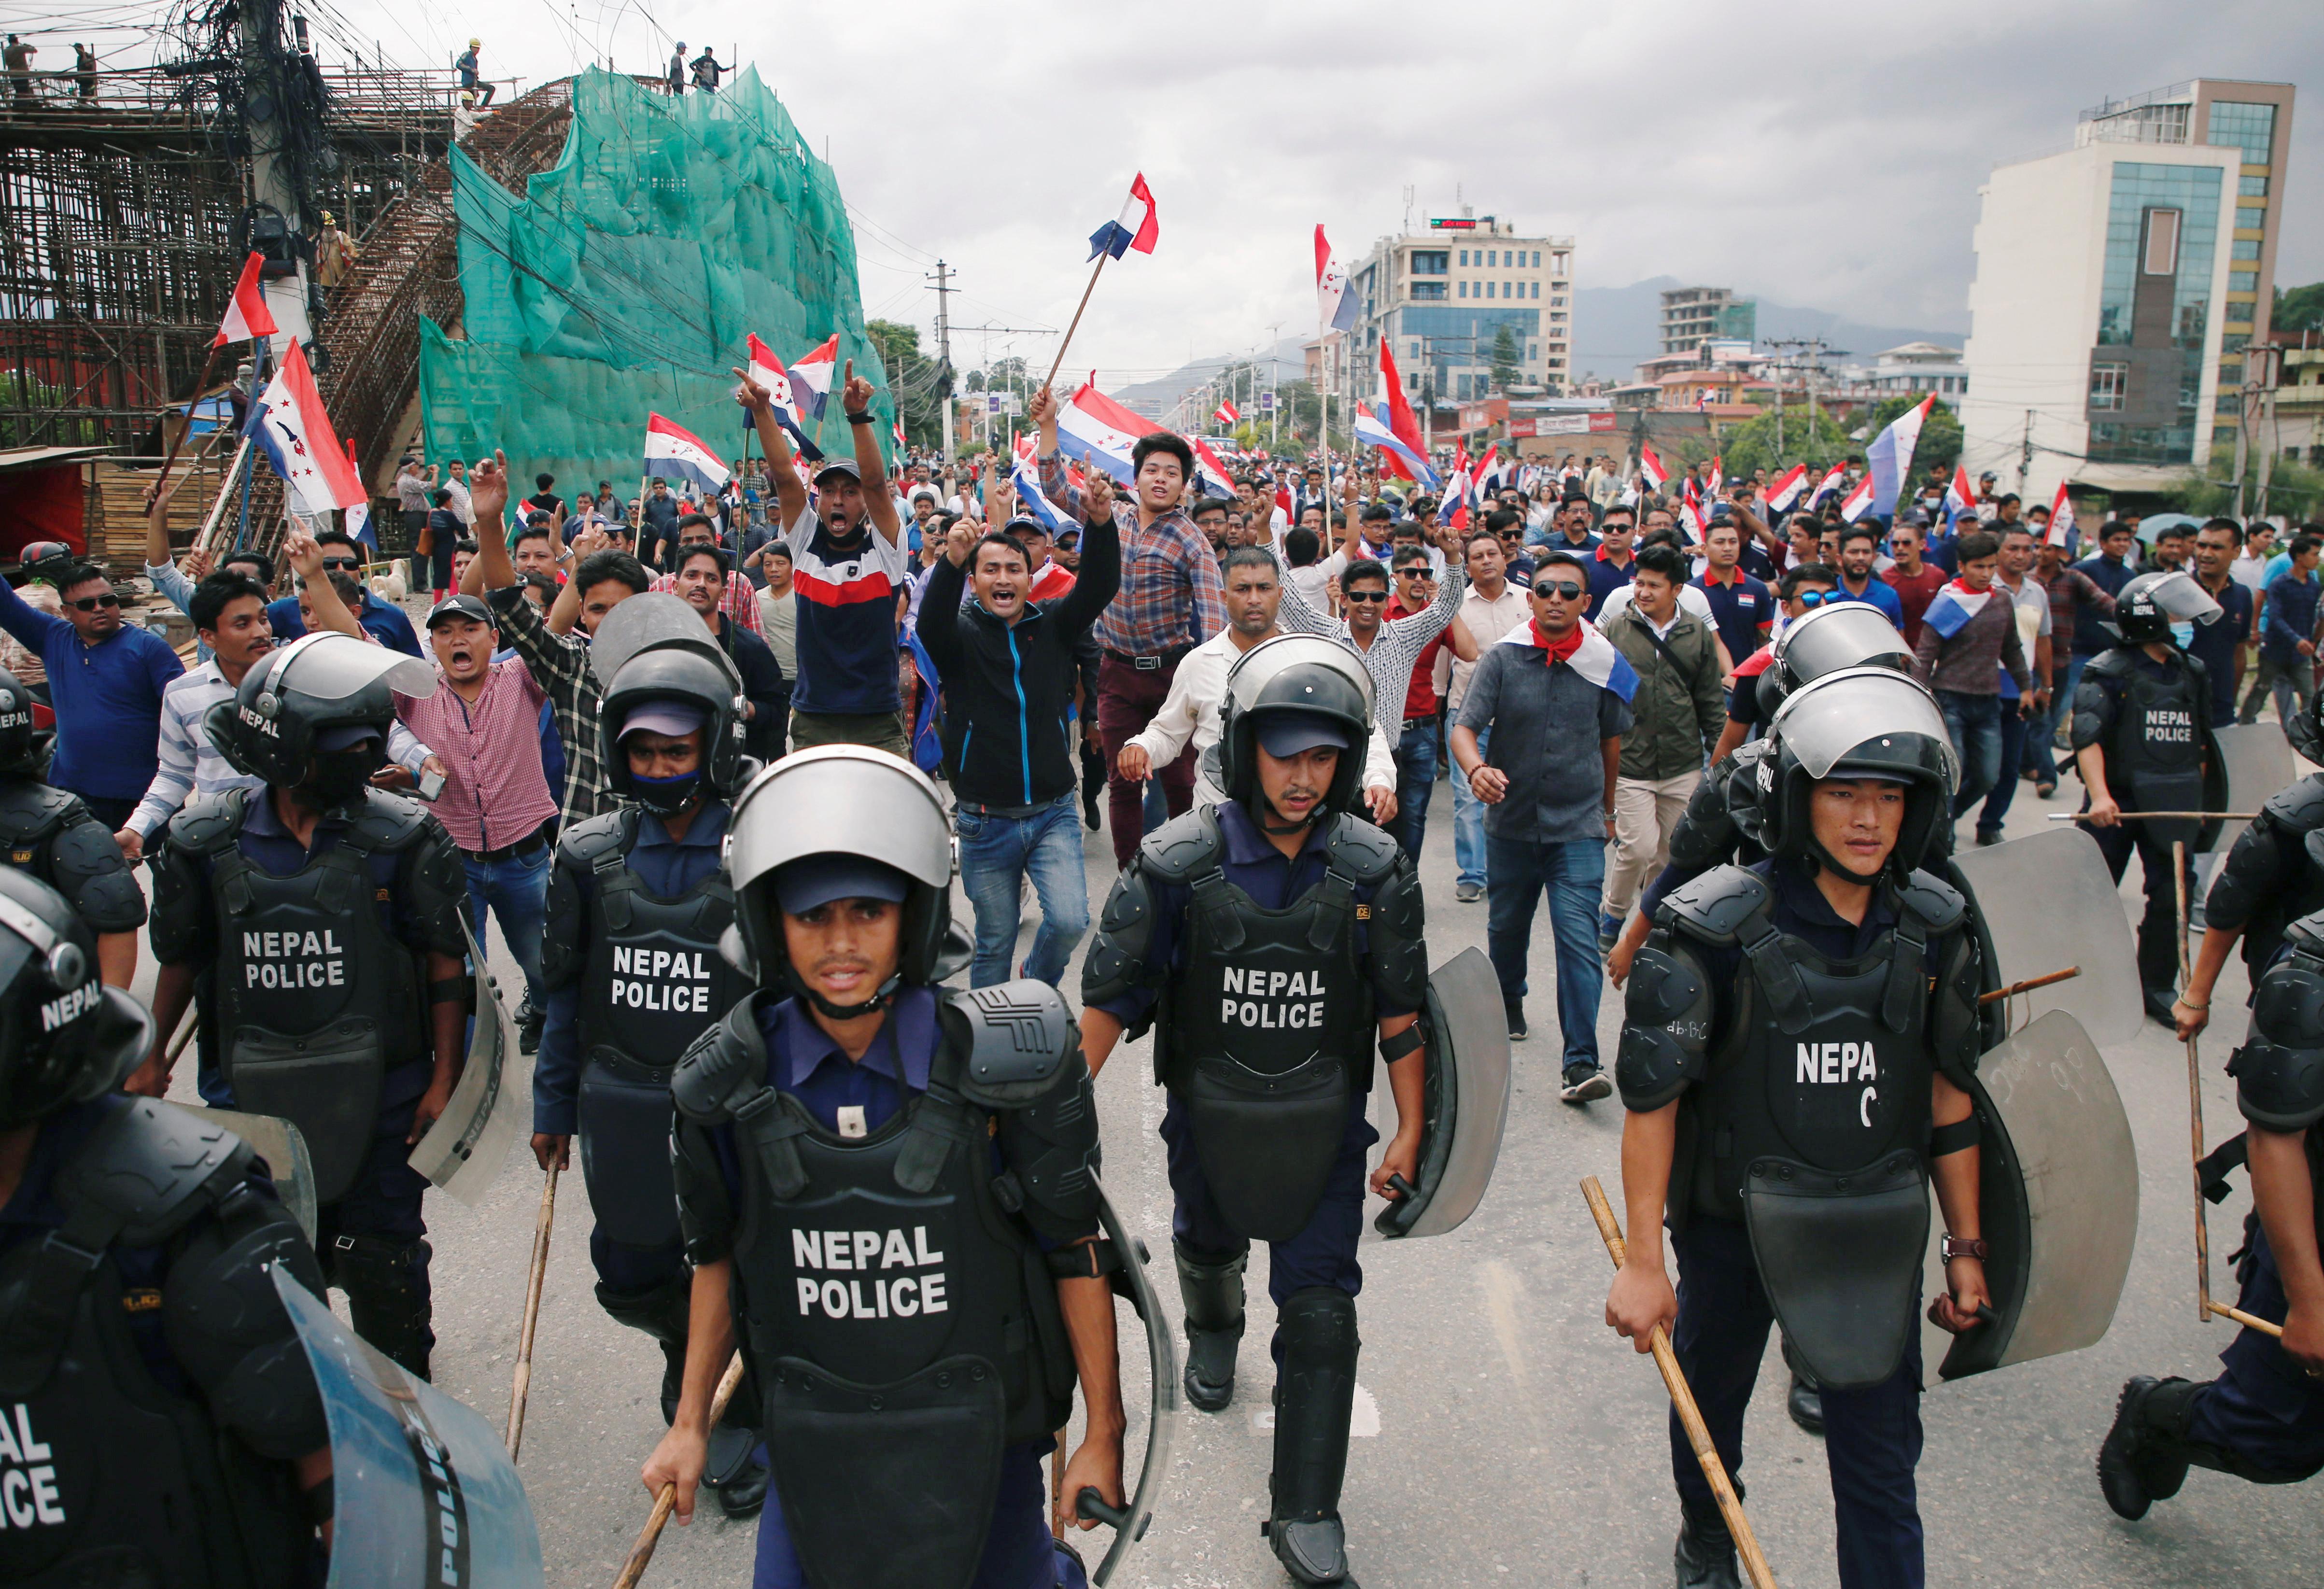 Nepal shifts rightwards after the revolution